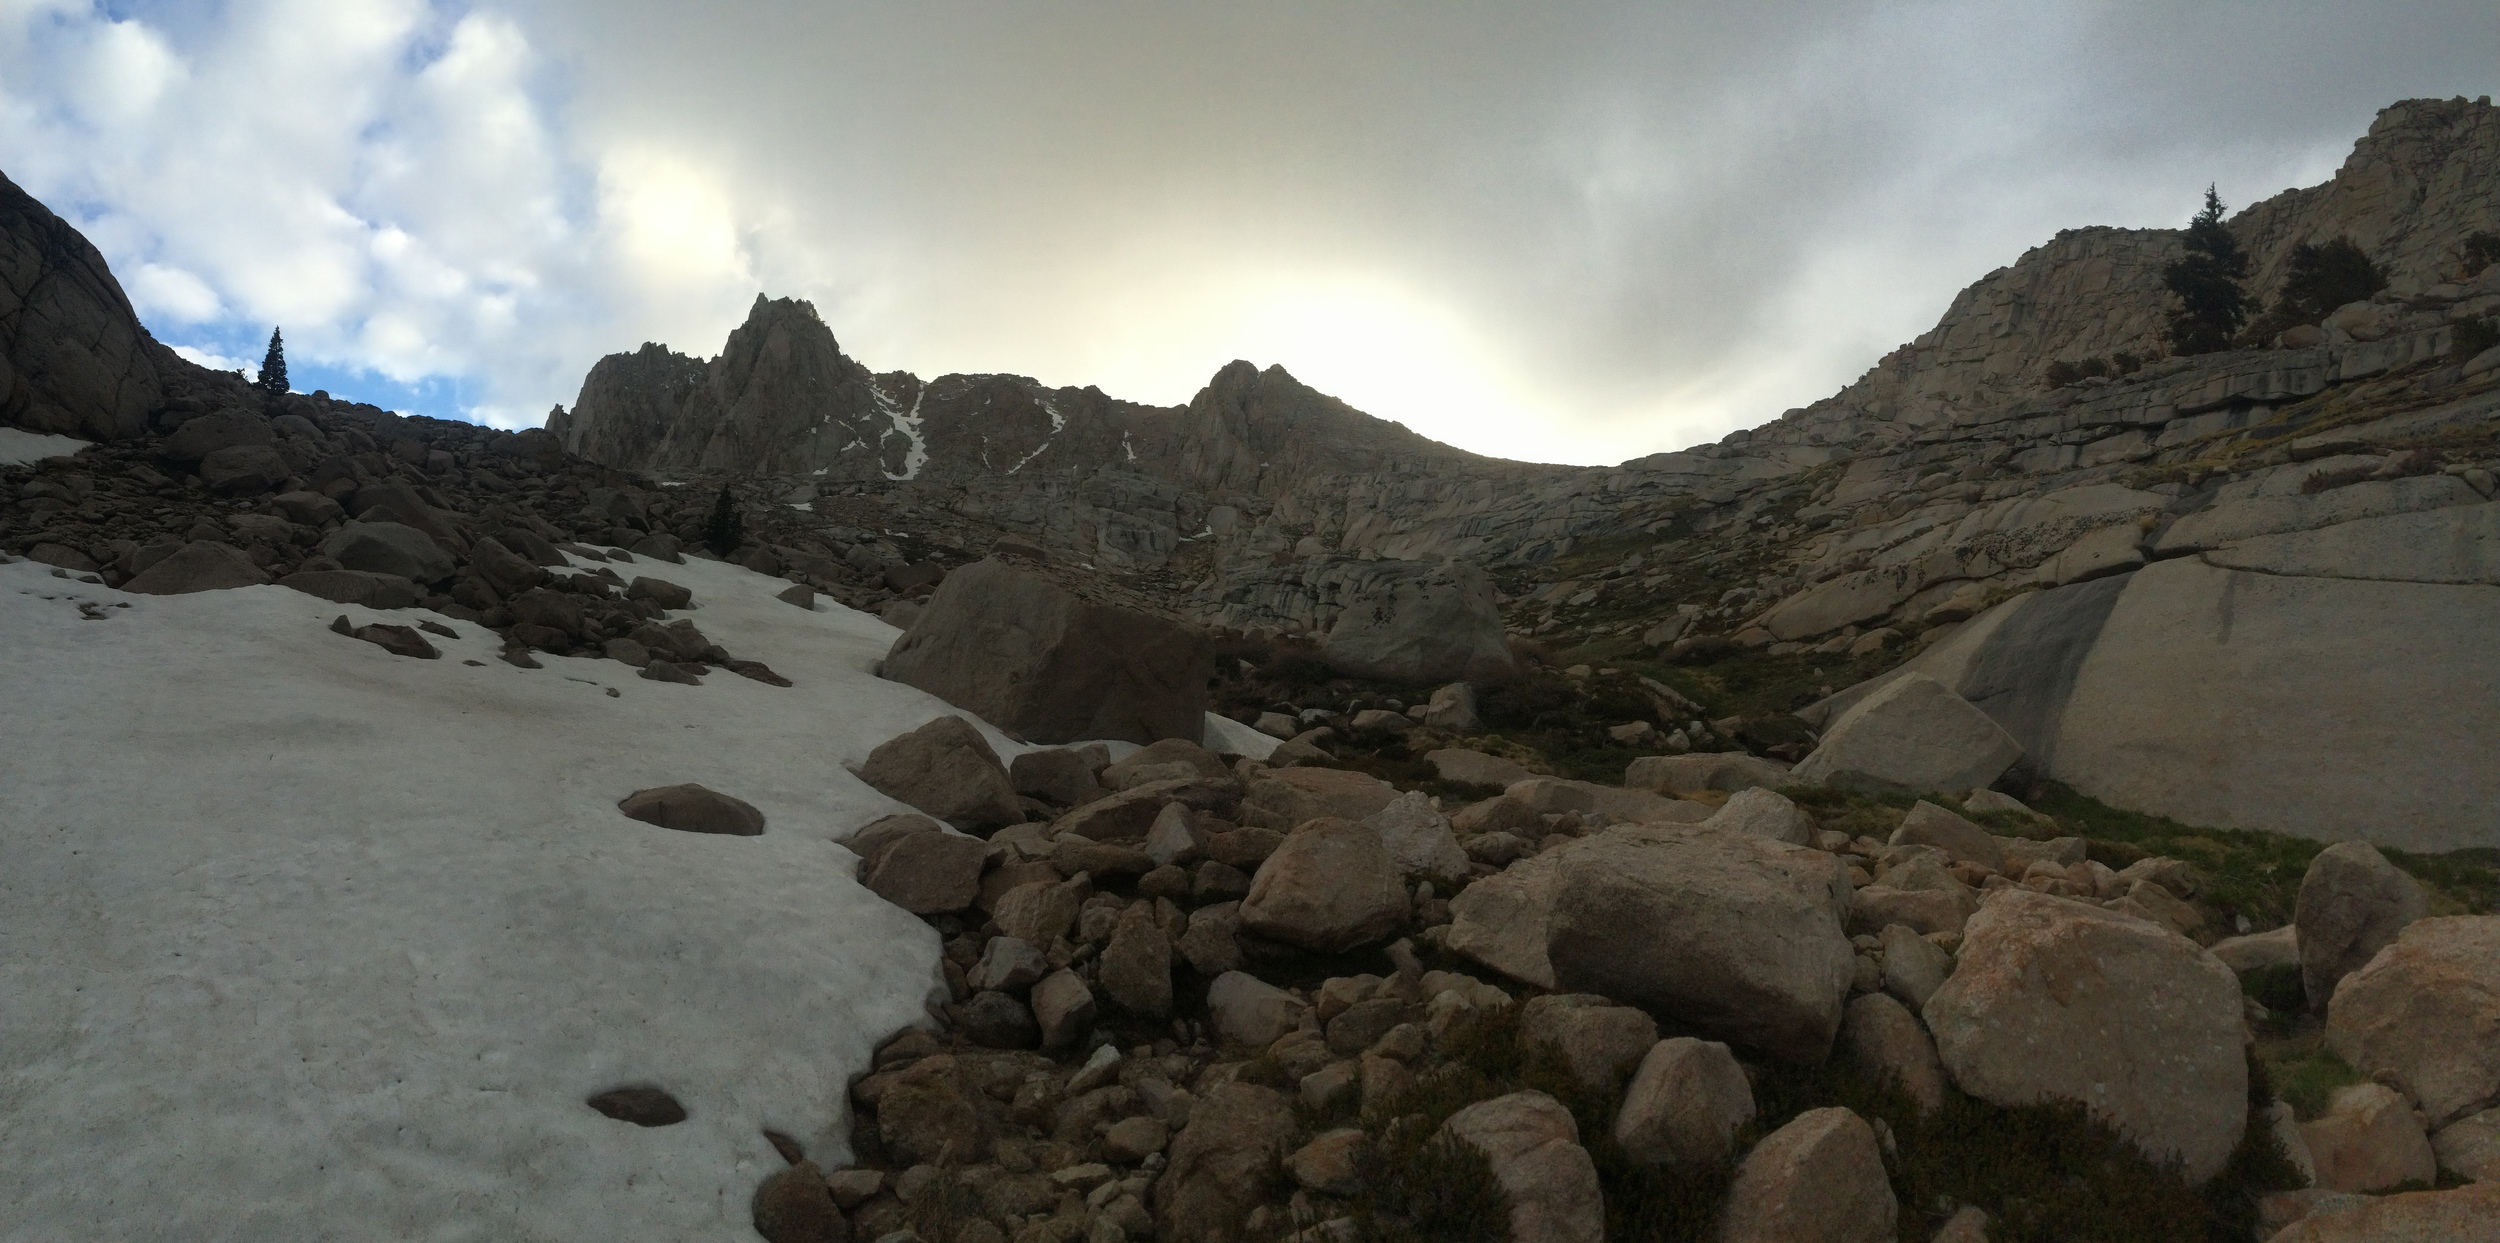 Meysan Lake drainage, Meysan Lake Trail, June 2015